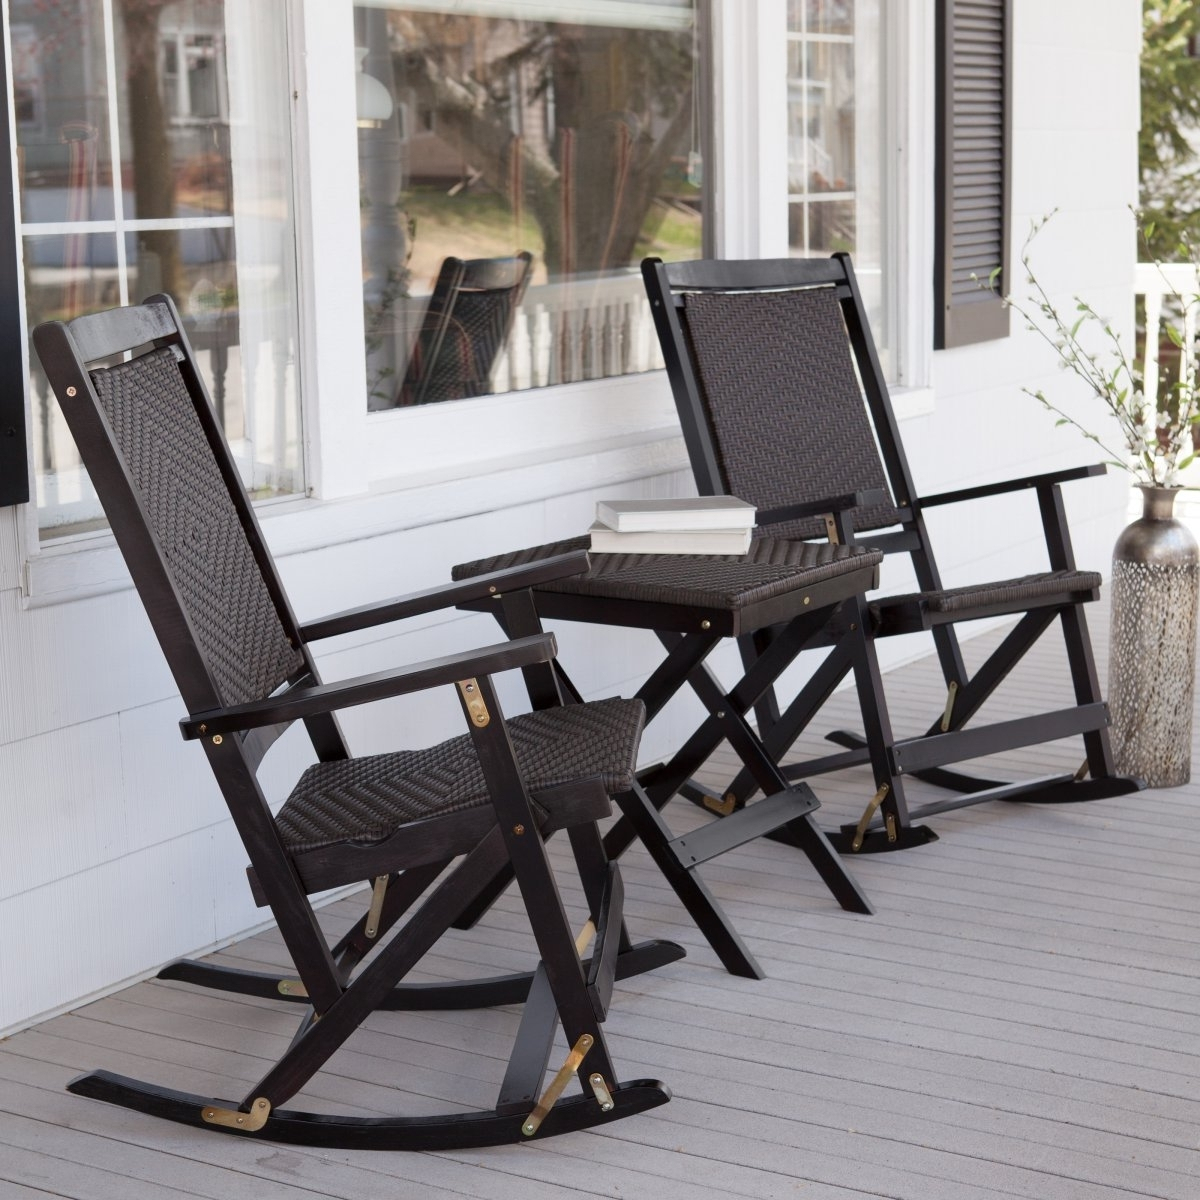 Rocking Chairs For Porch Pertaining To Latest Reupholsters Black Rocking Chairs — The Home Redesign (View 14 of 20)